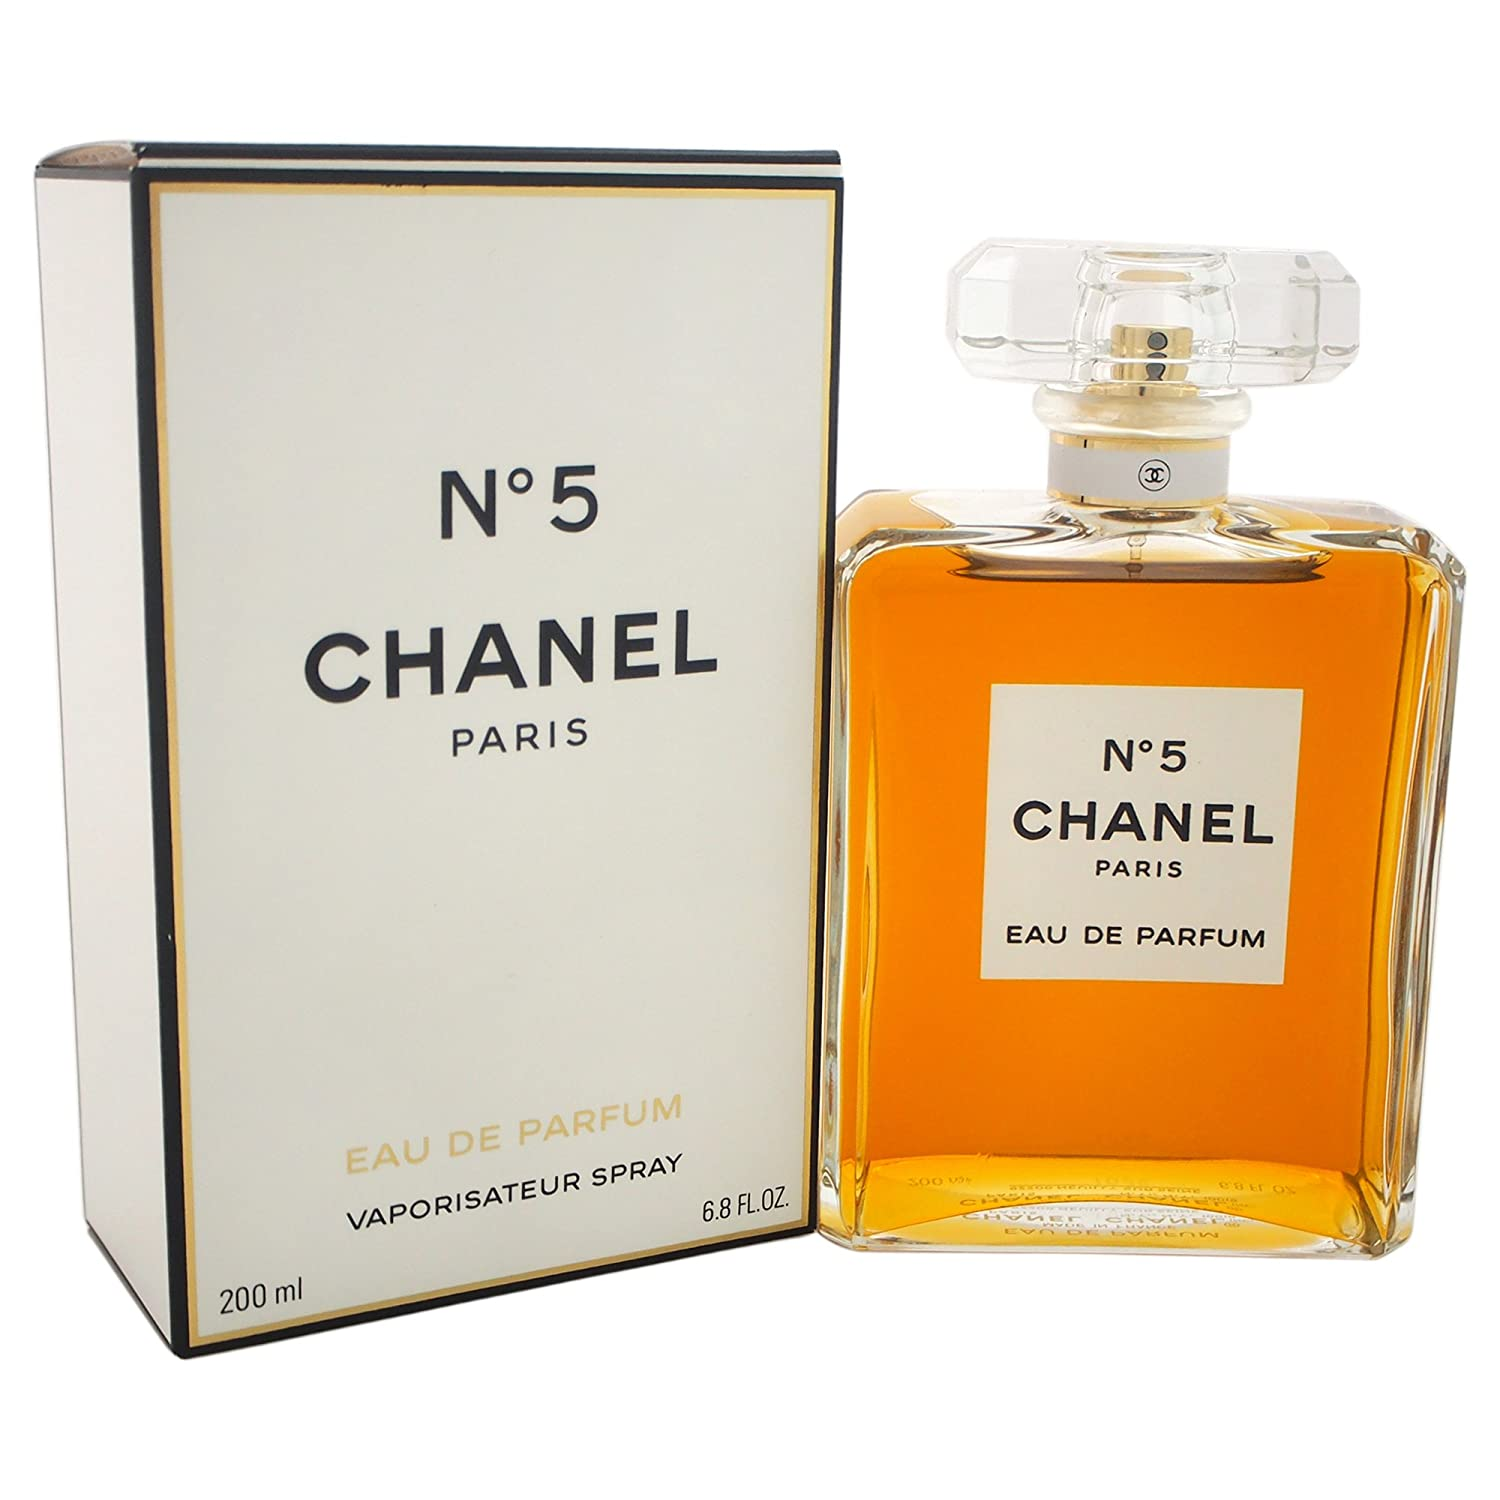 chanel perfume no 5 images galleries with a bite. Black Bedroom Furniture Sets. Home Design Ideas